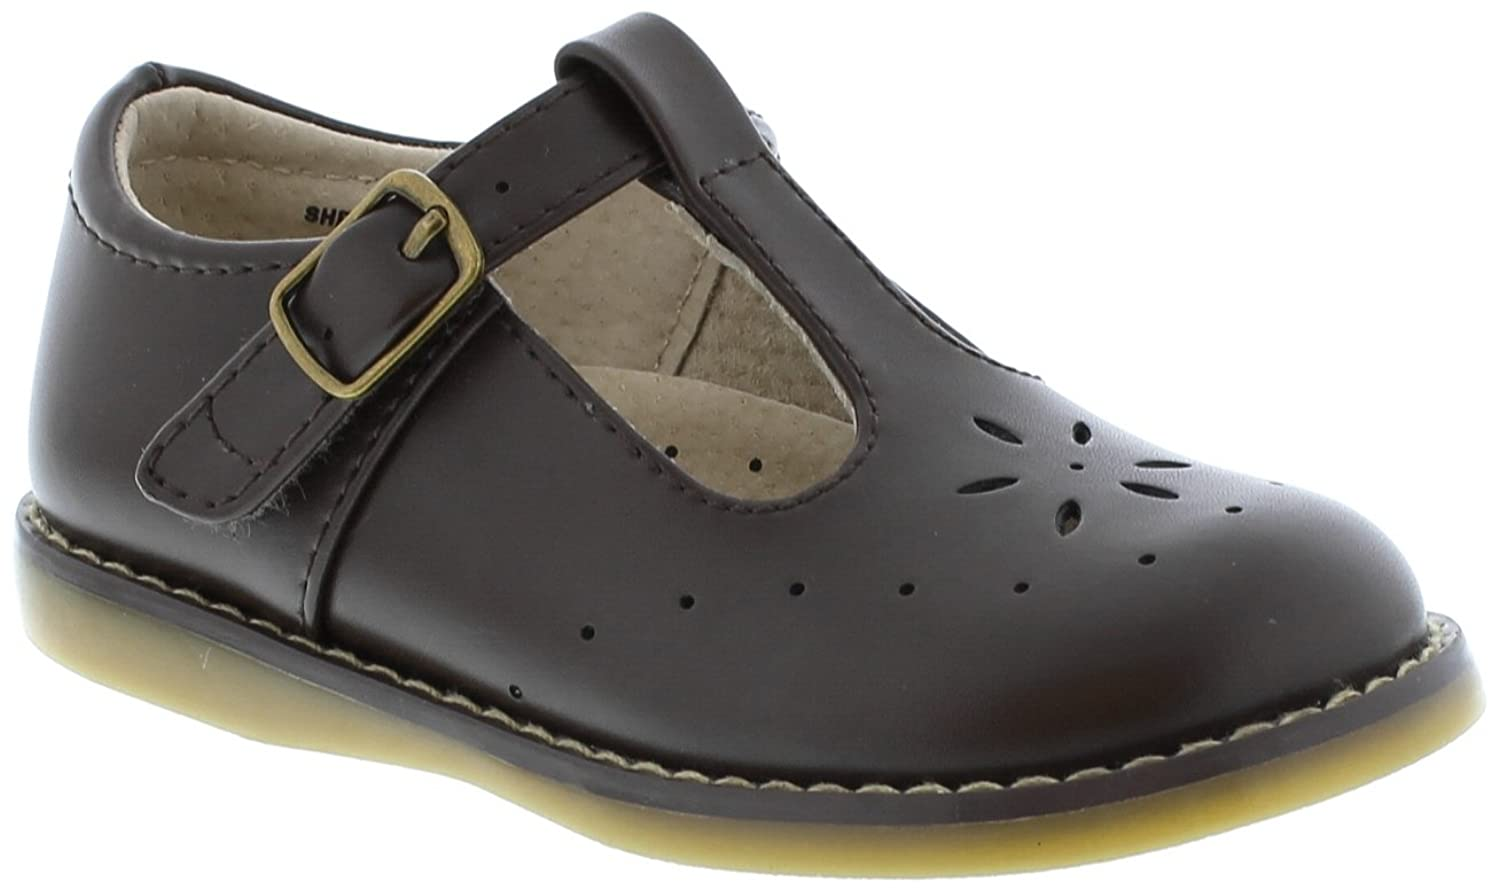 Footmates Girl's Sherry Velcro Perf T-Strap (Toddler/Little Kid) Chocolate